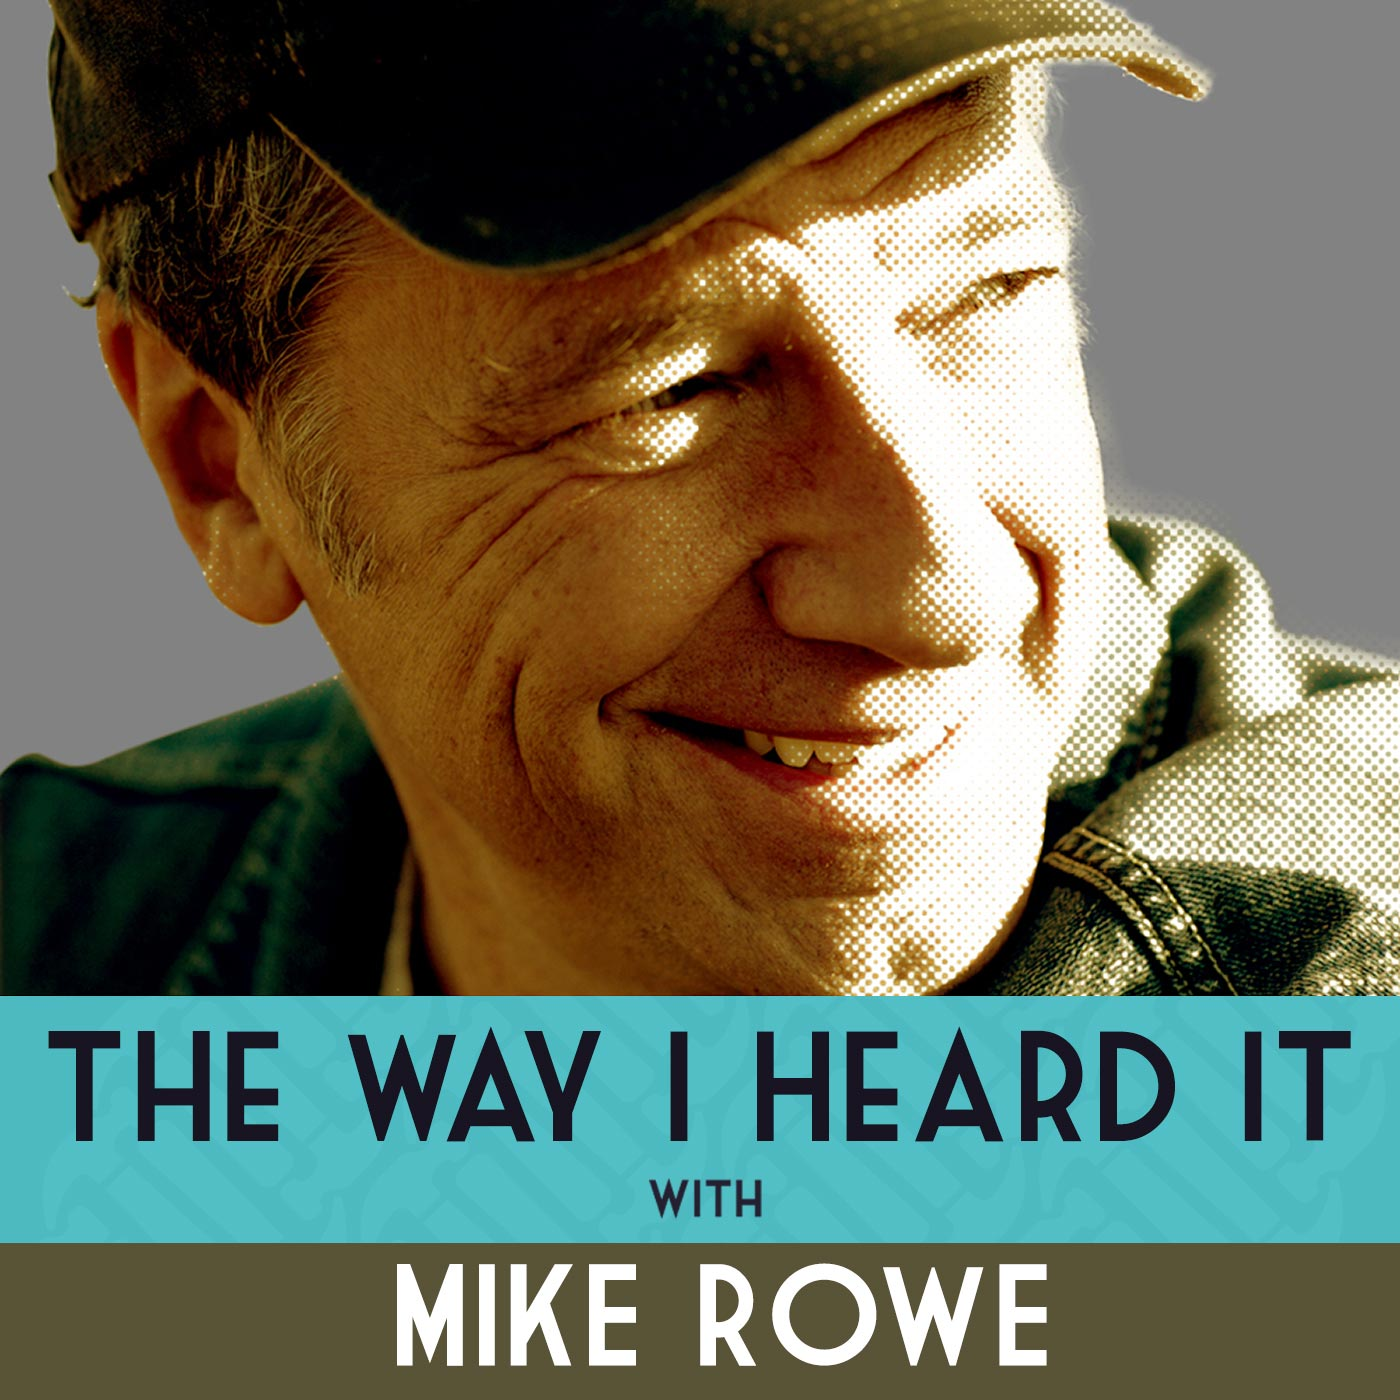 The Way I Heard It with Mike Rowe logo